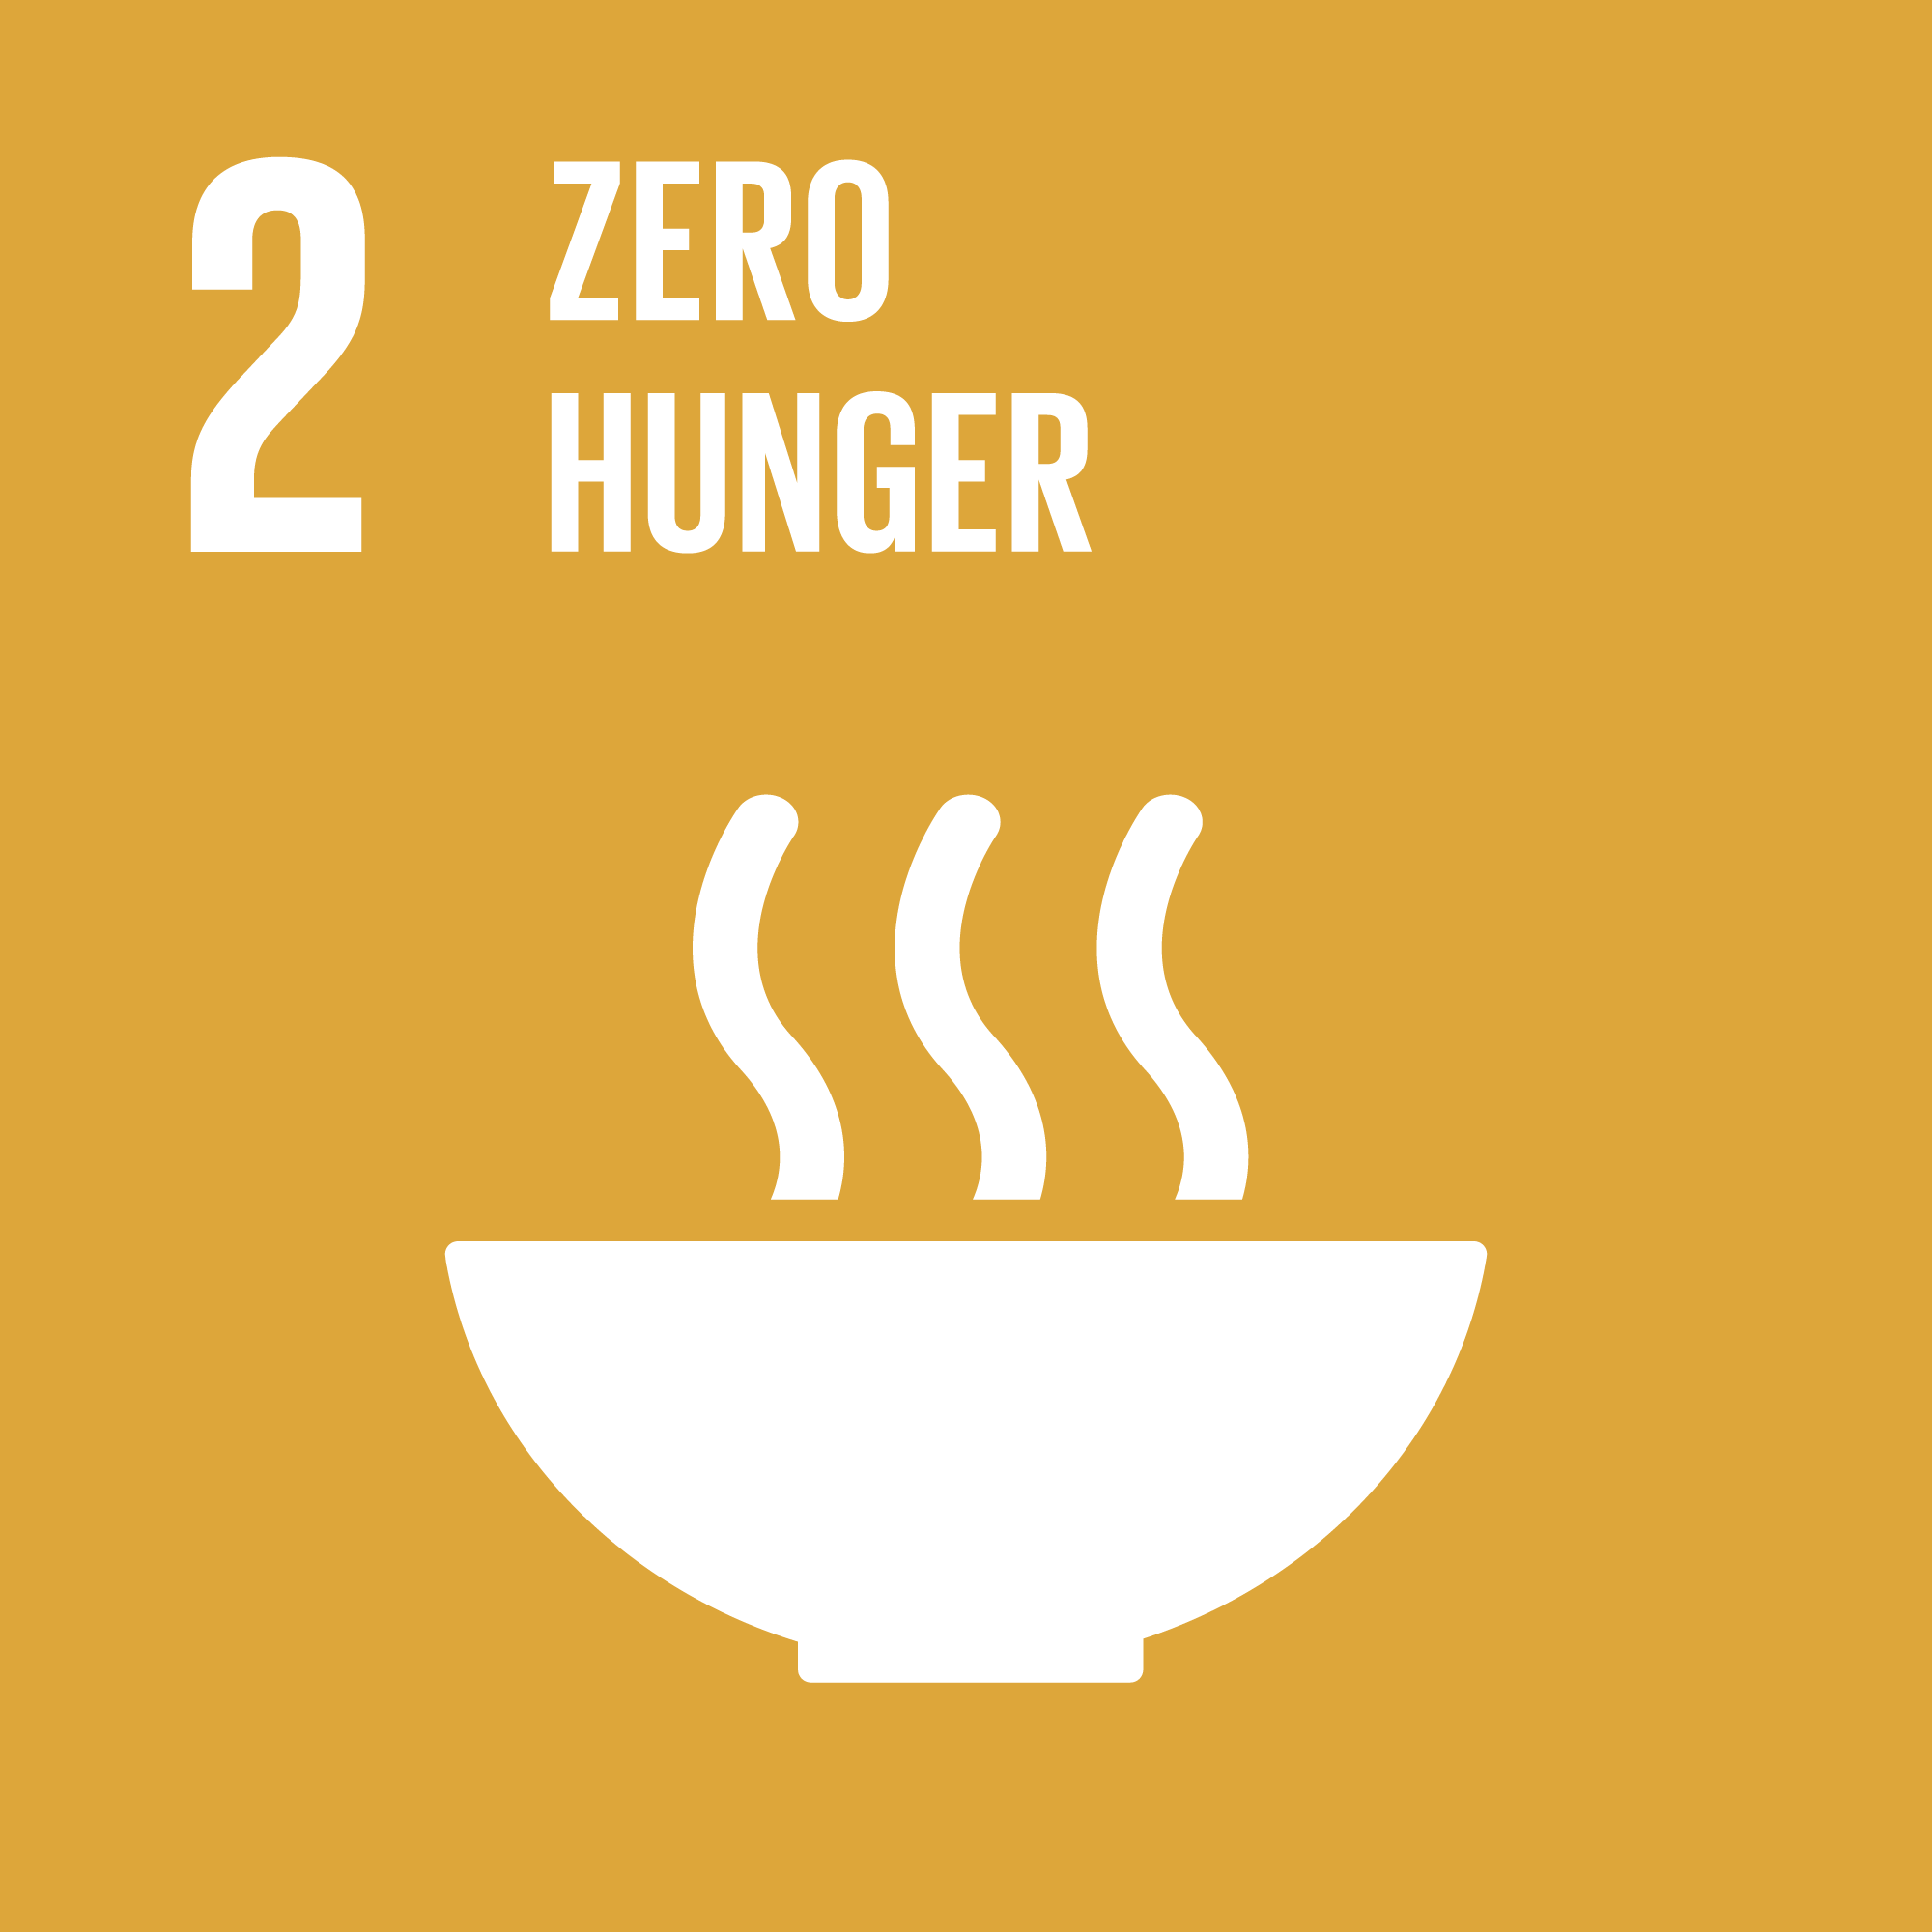 Sustainable Development Goal 2: Zero Hunger